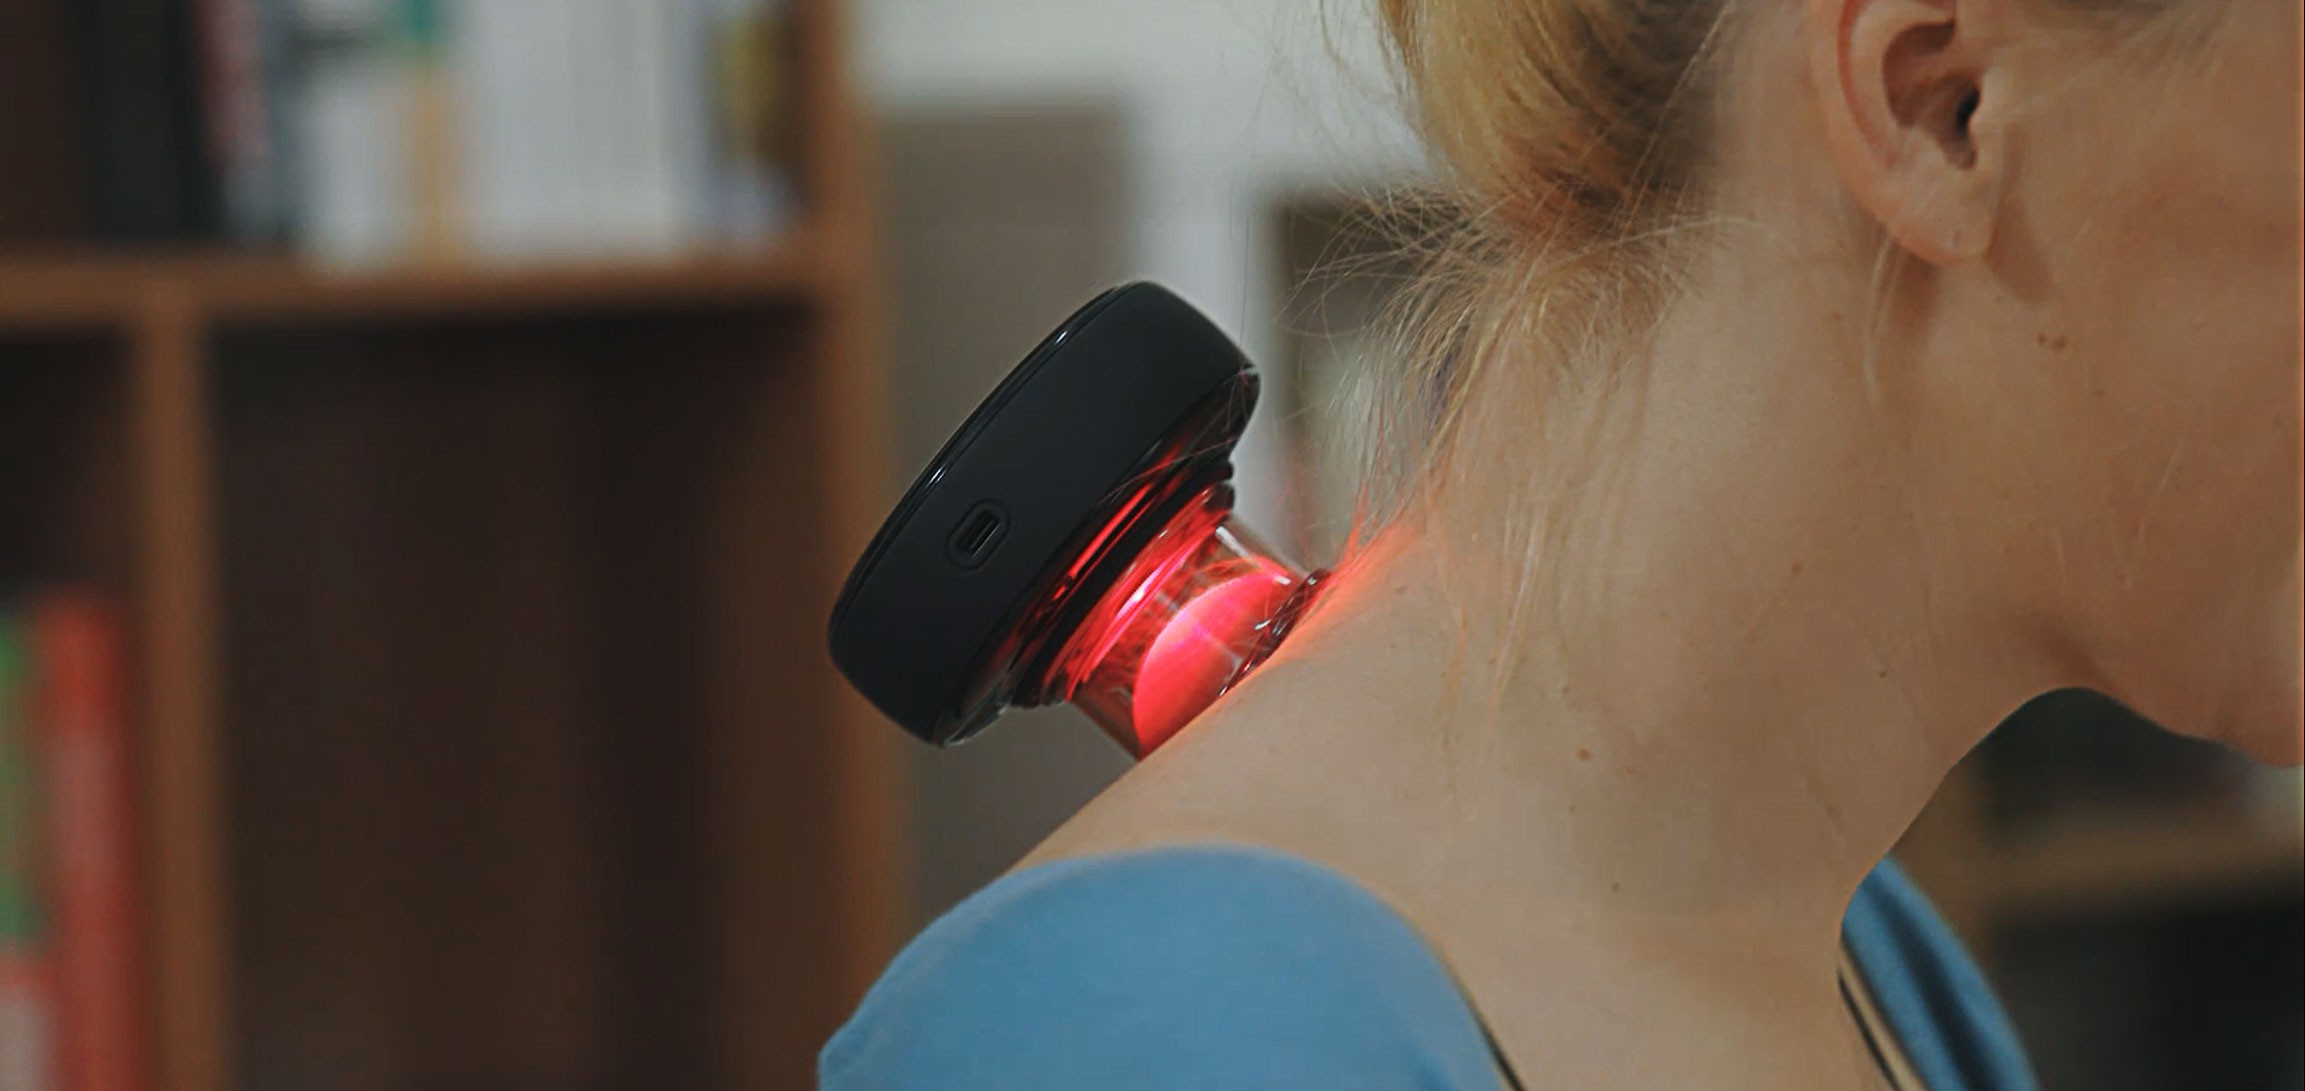 Cupping with red light therapy